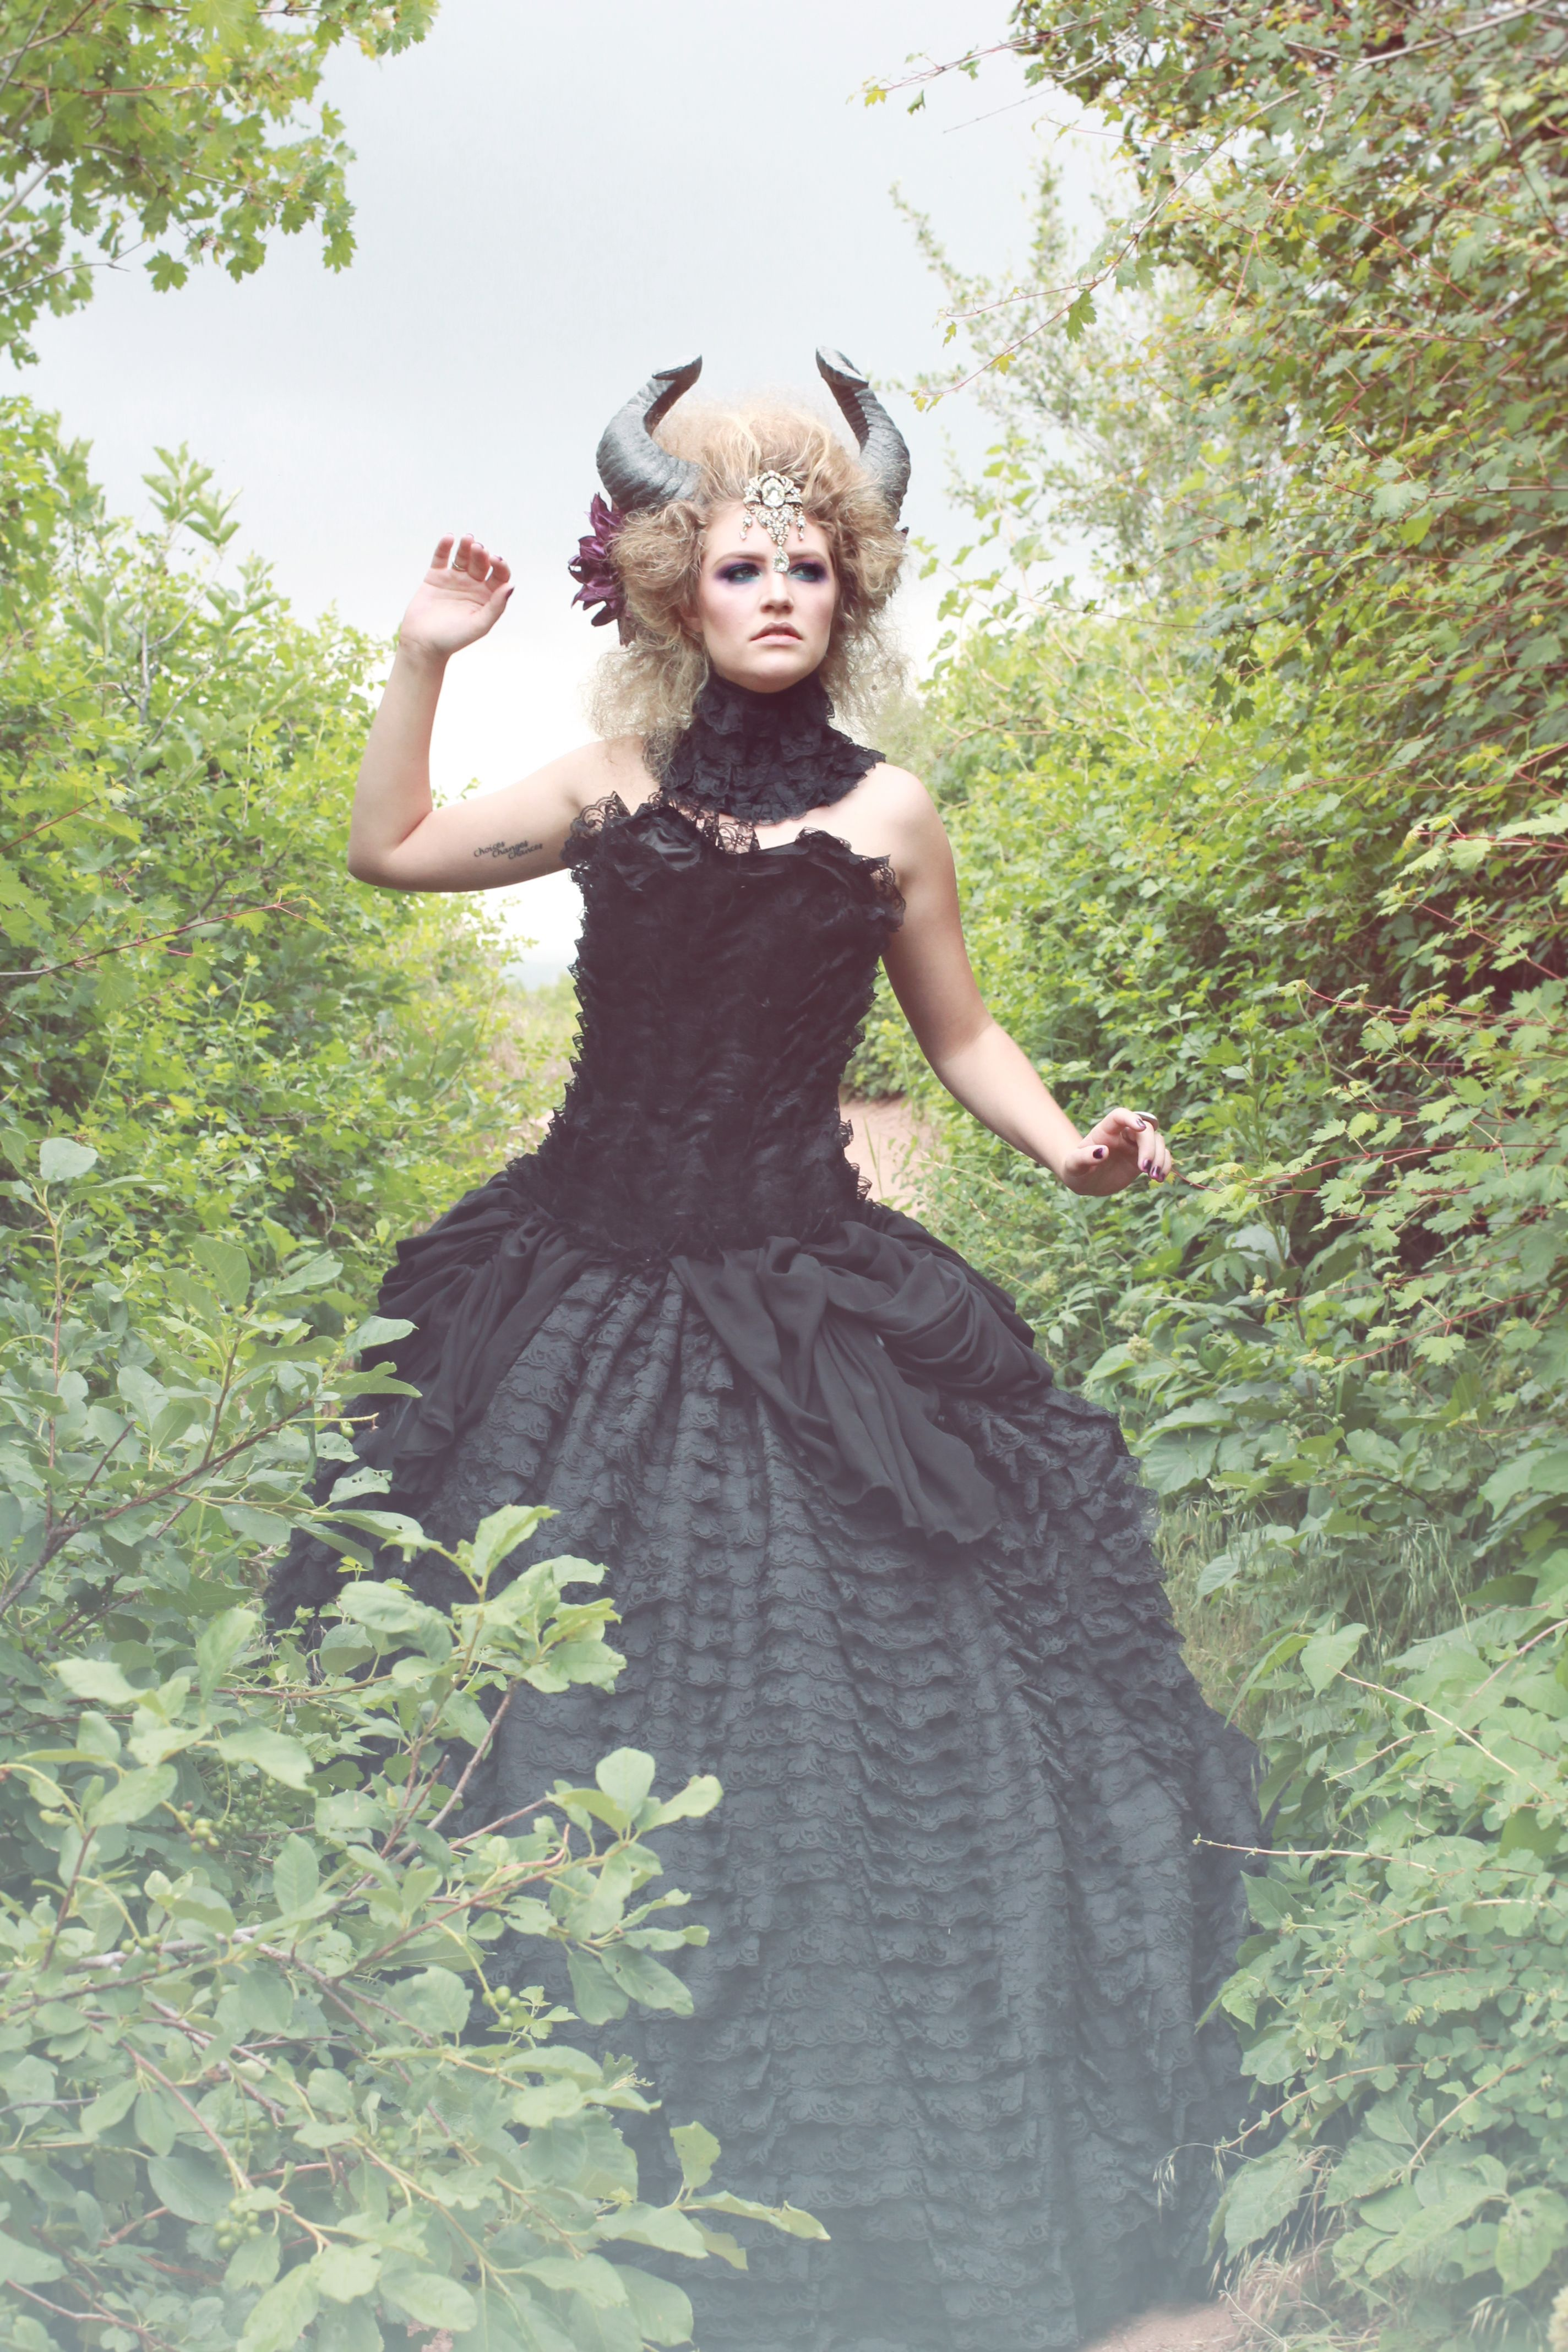 Custom Lace Gothic Wedding Gown by Parasite Eve Designs | CustomMade.com